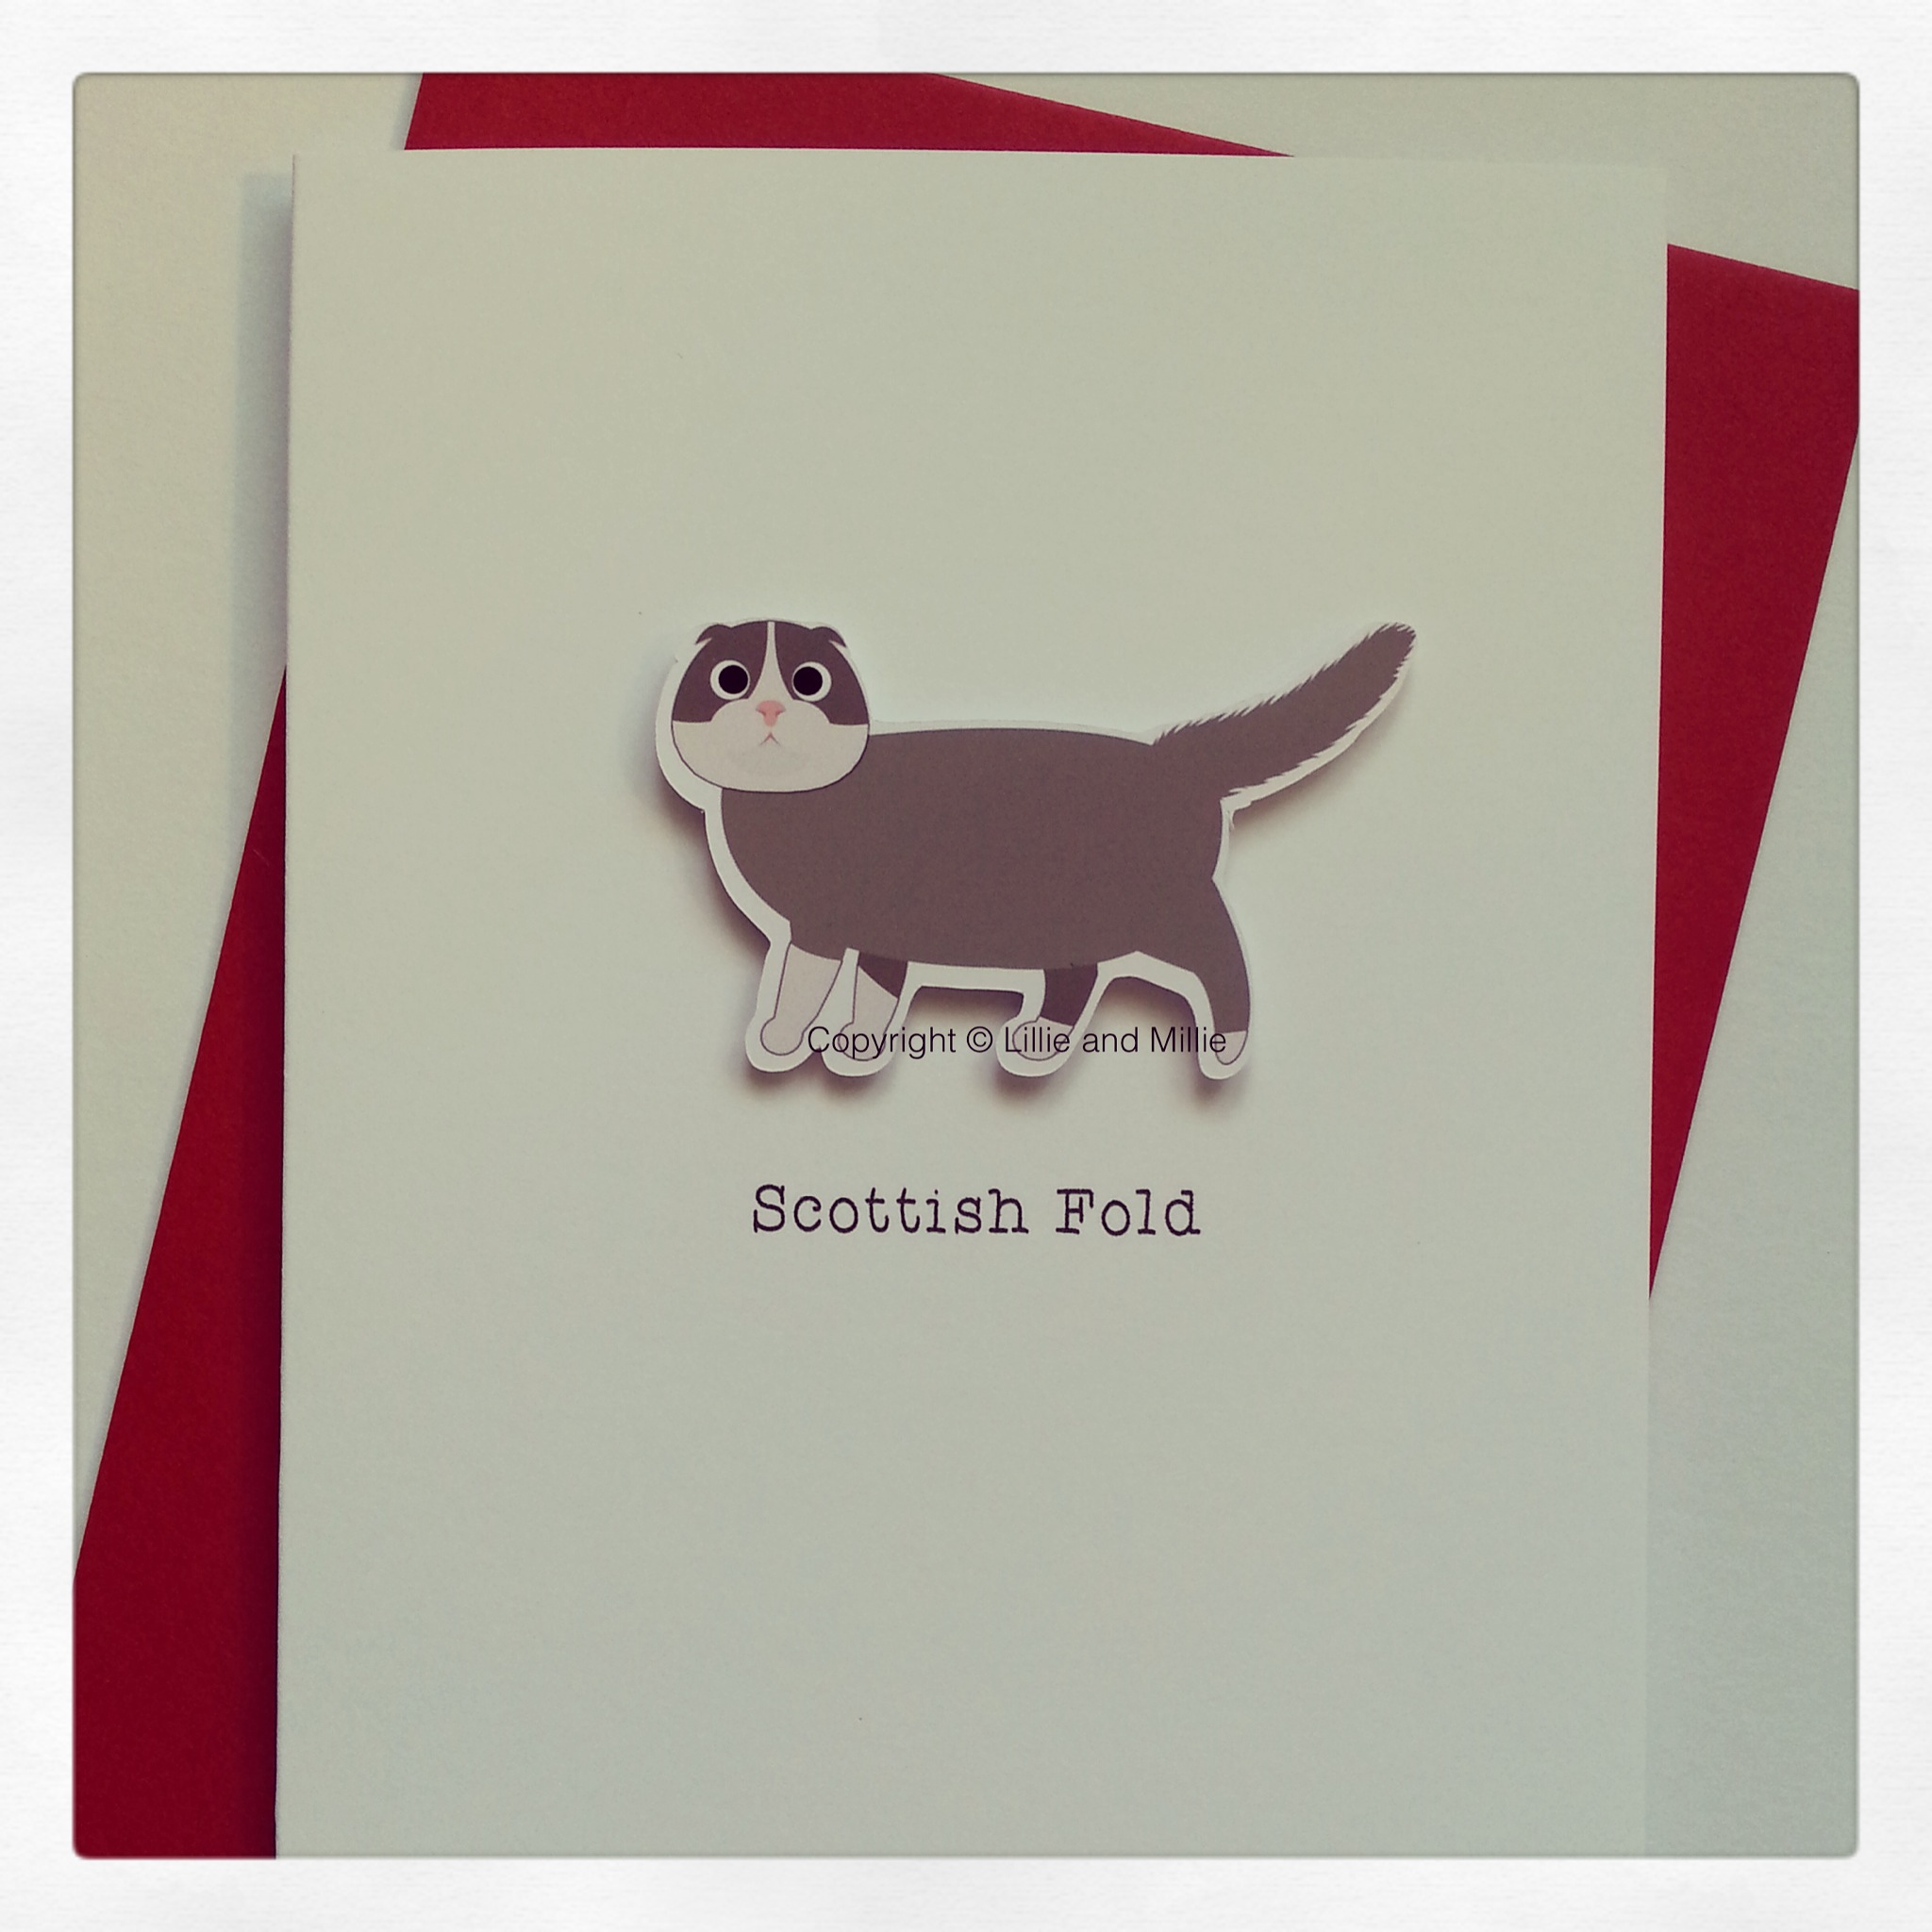 Cute and Cuddly Scottish Fold Cat Greetings Card